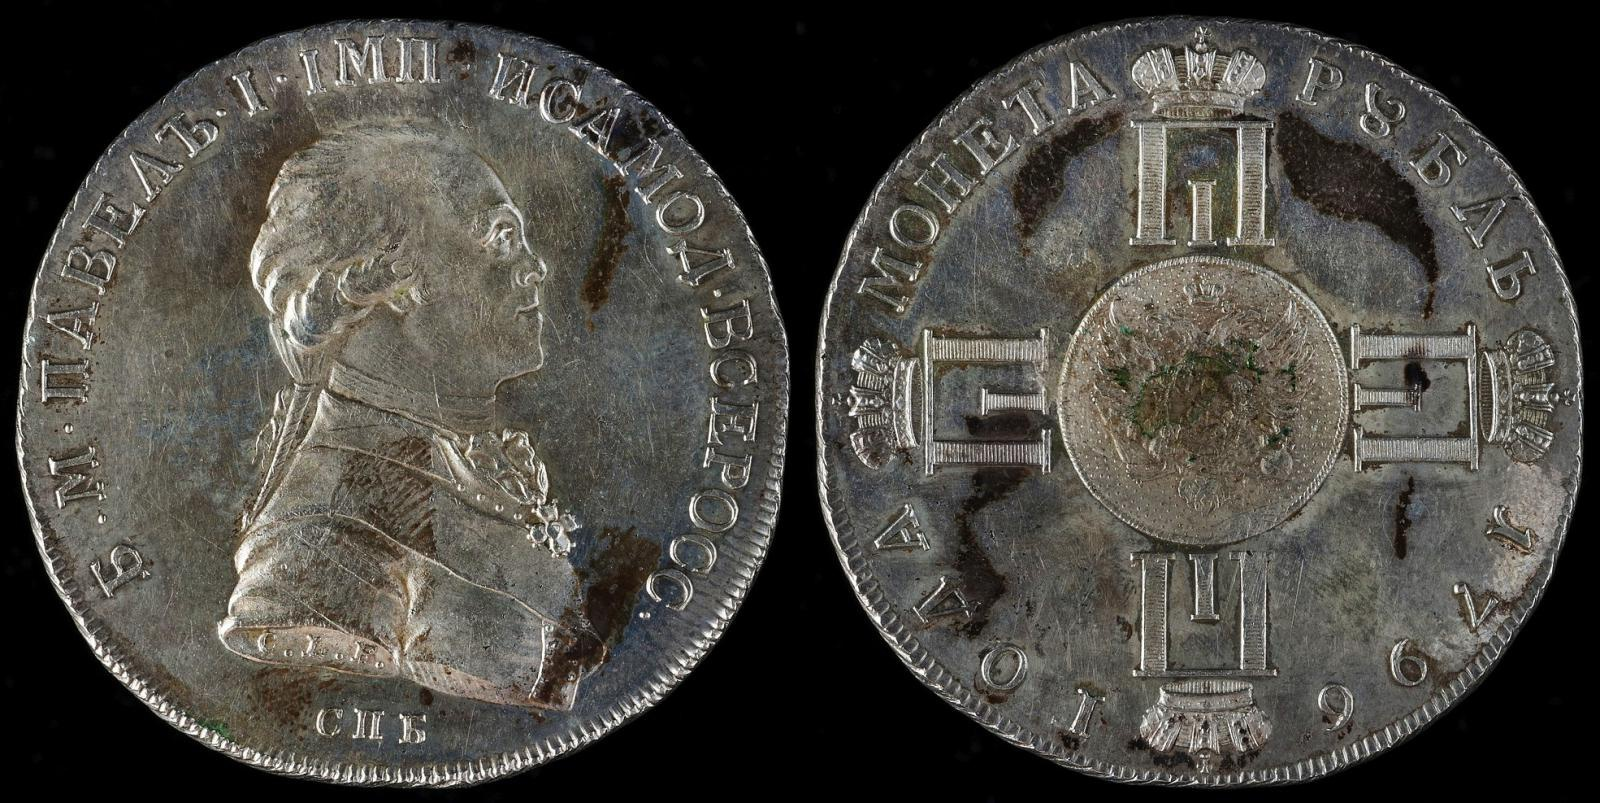 1796%20pattern%20rouble%20Paul%20I.jpg